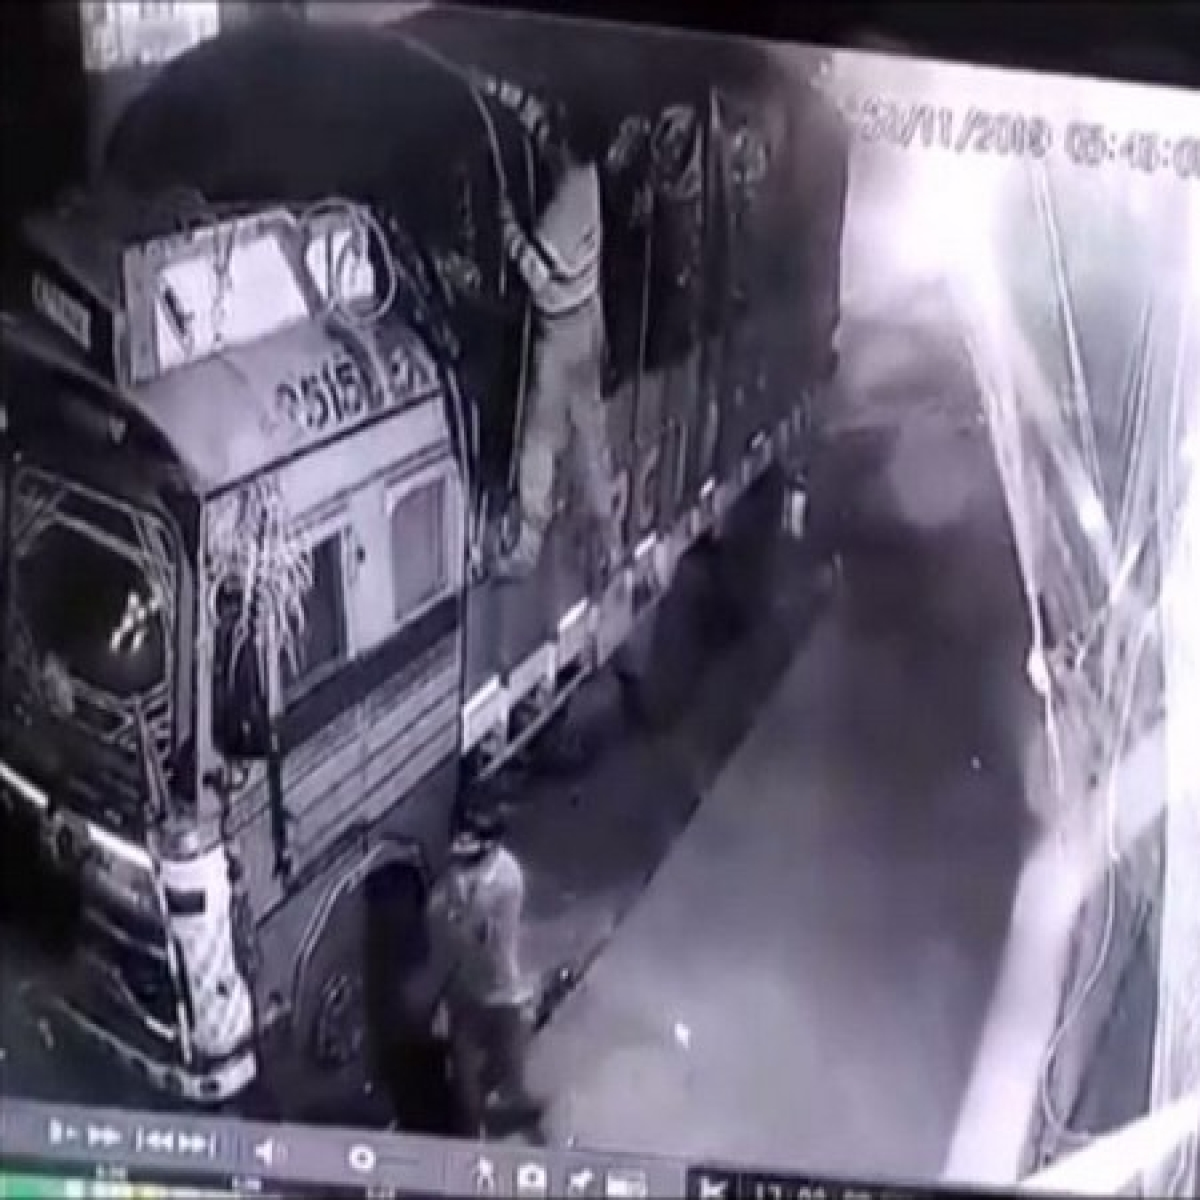 Thieves stealing bags of chana dal from a truck caught in CCTV